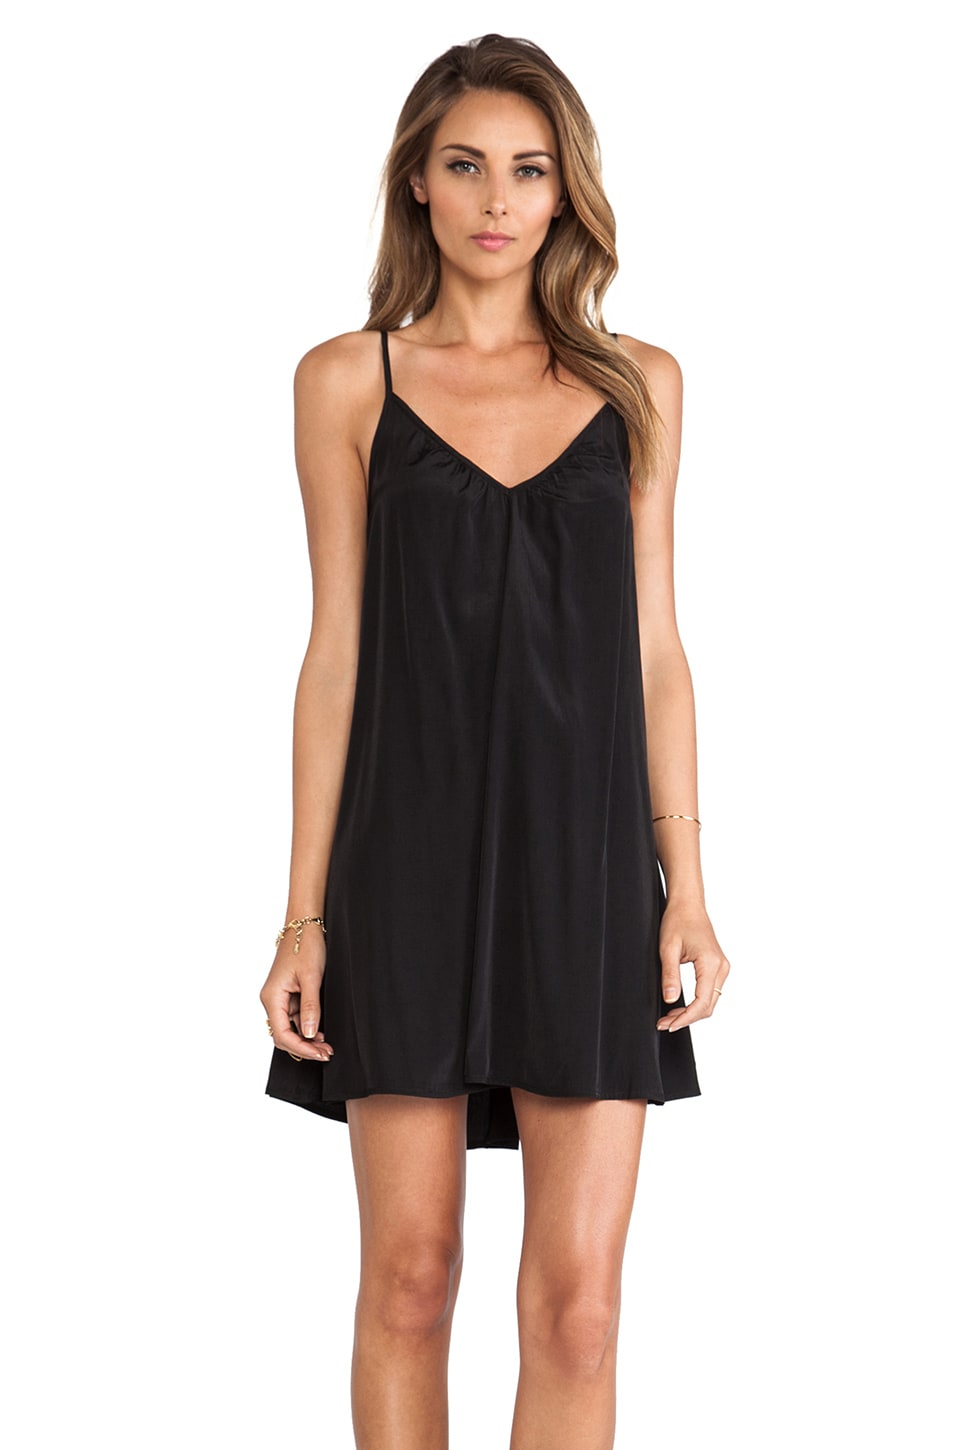 Pink Stitch Resort Mini Dress in Black